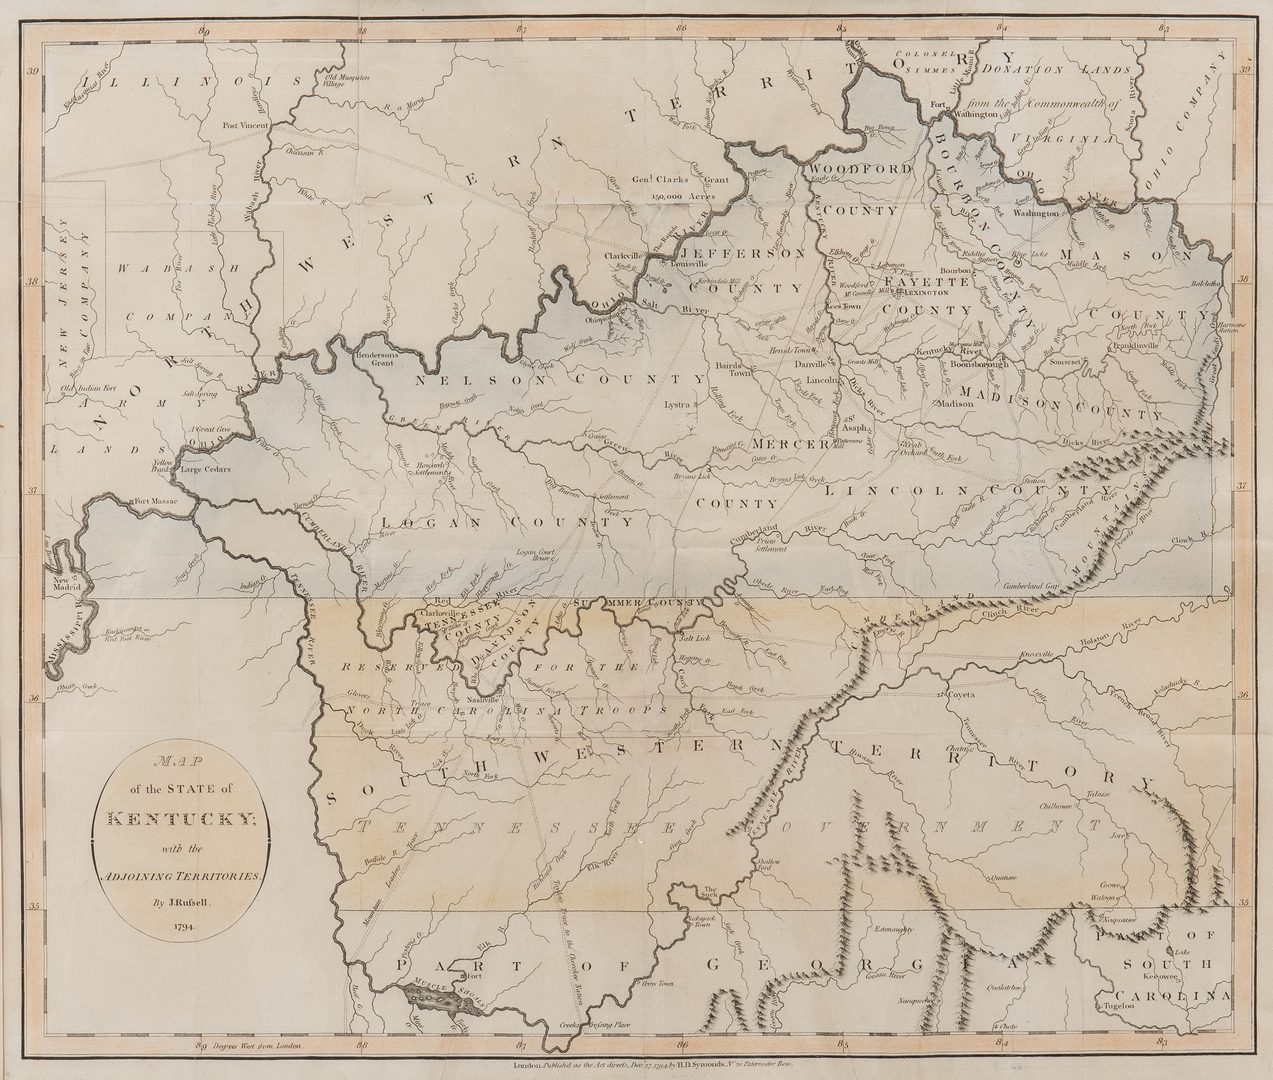 Lot 246: Map of Kentucky, 1794, J. Russell, showing Tennessee as SW Territory